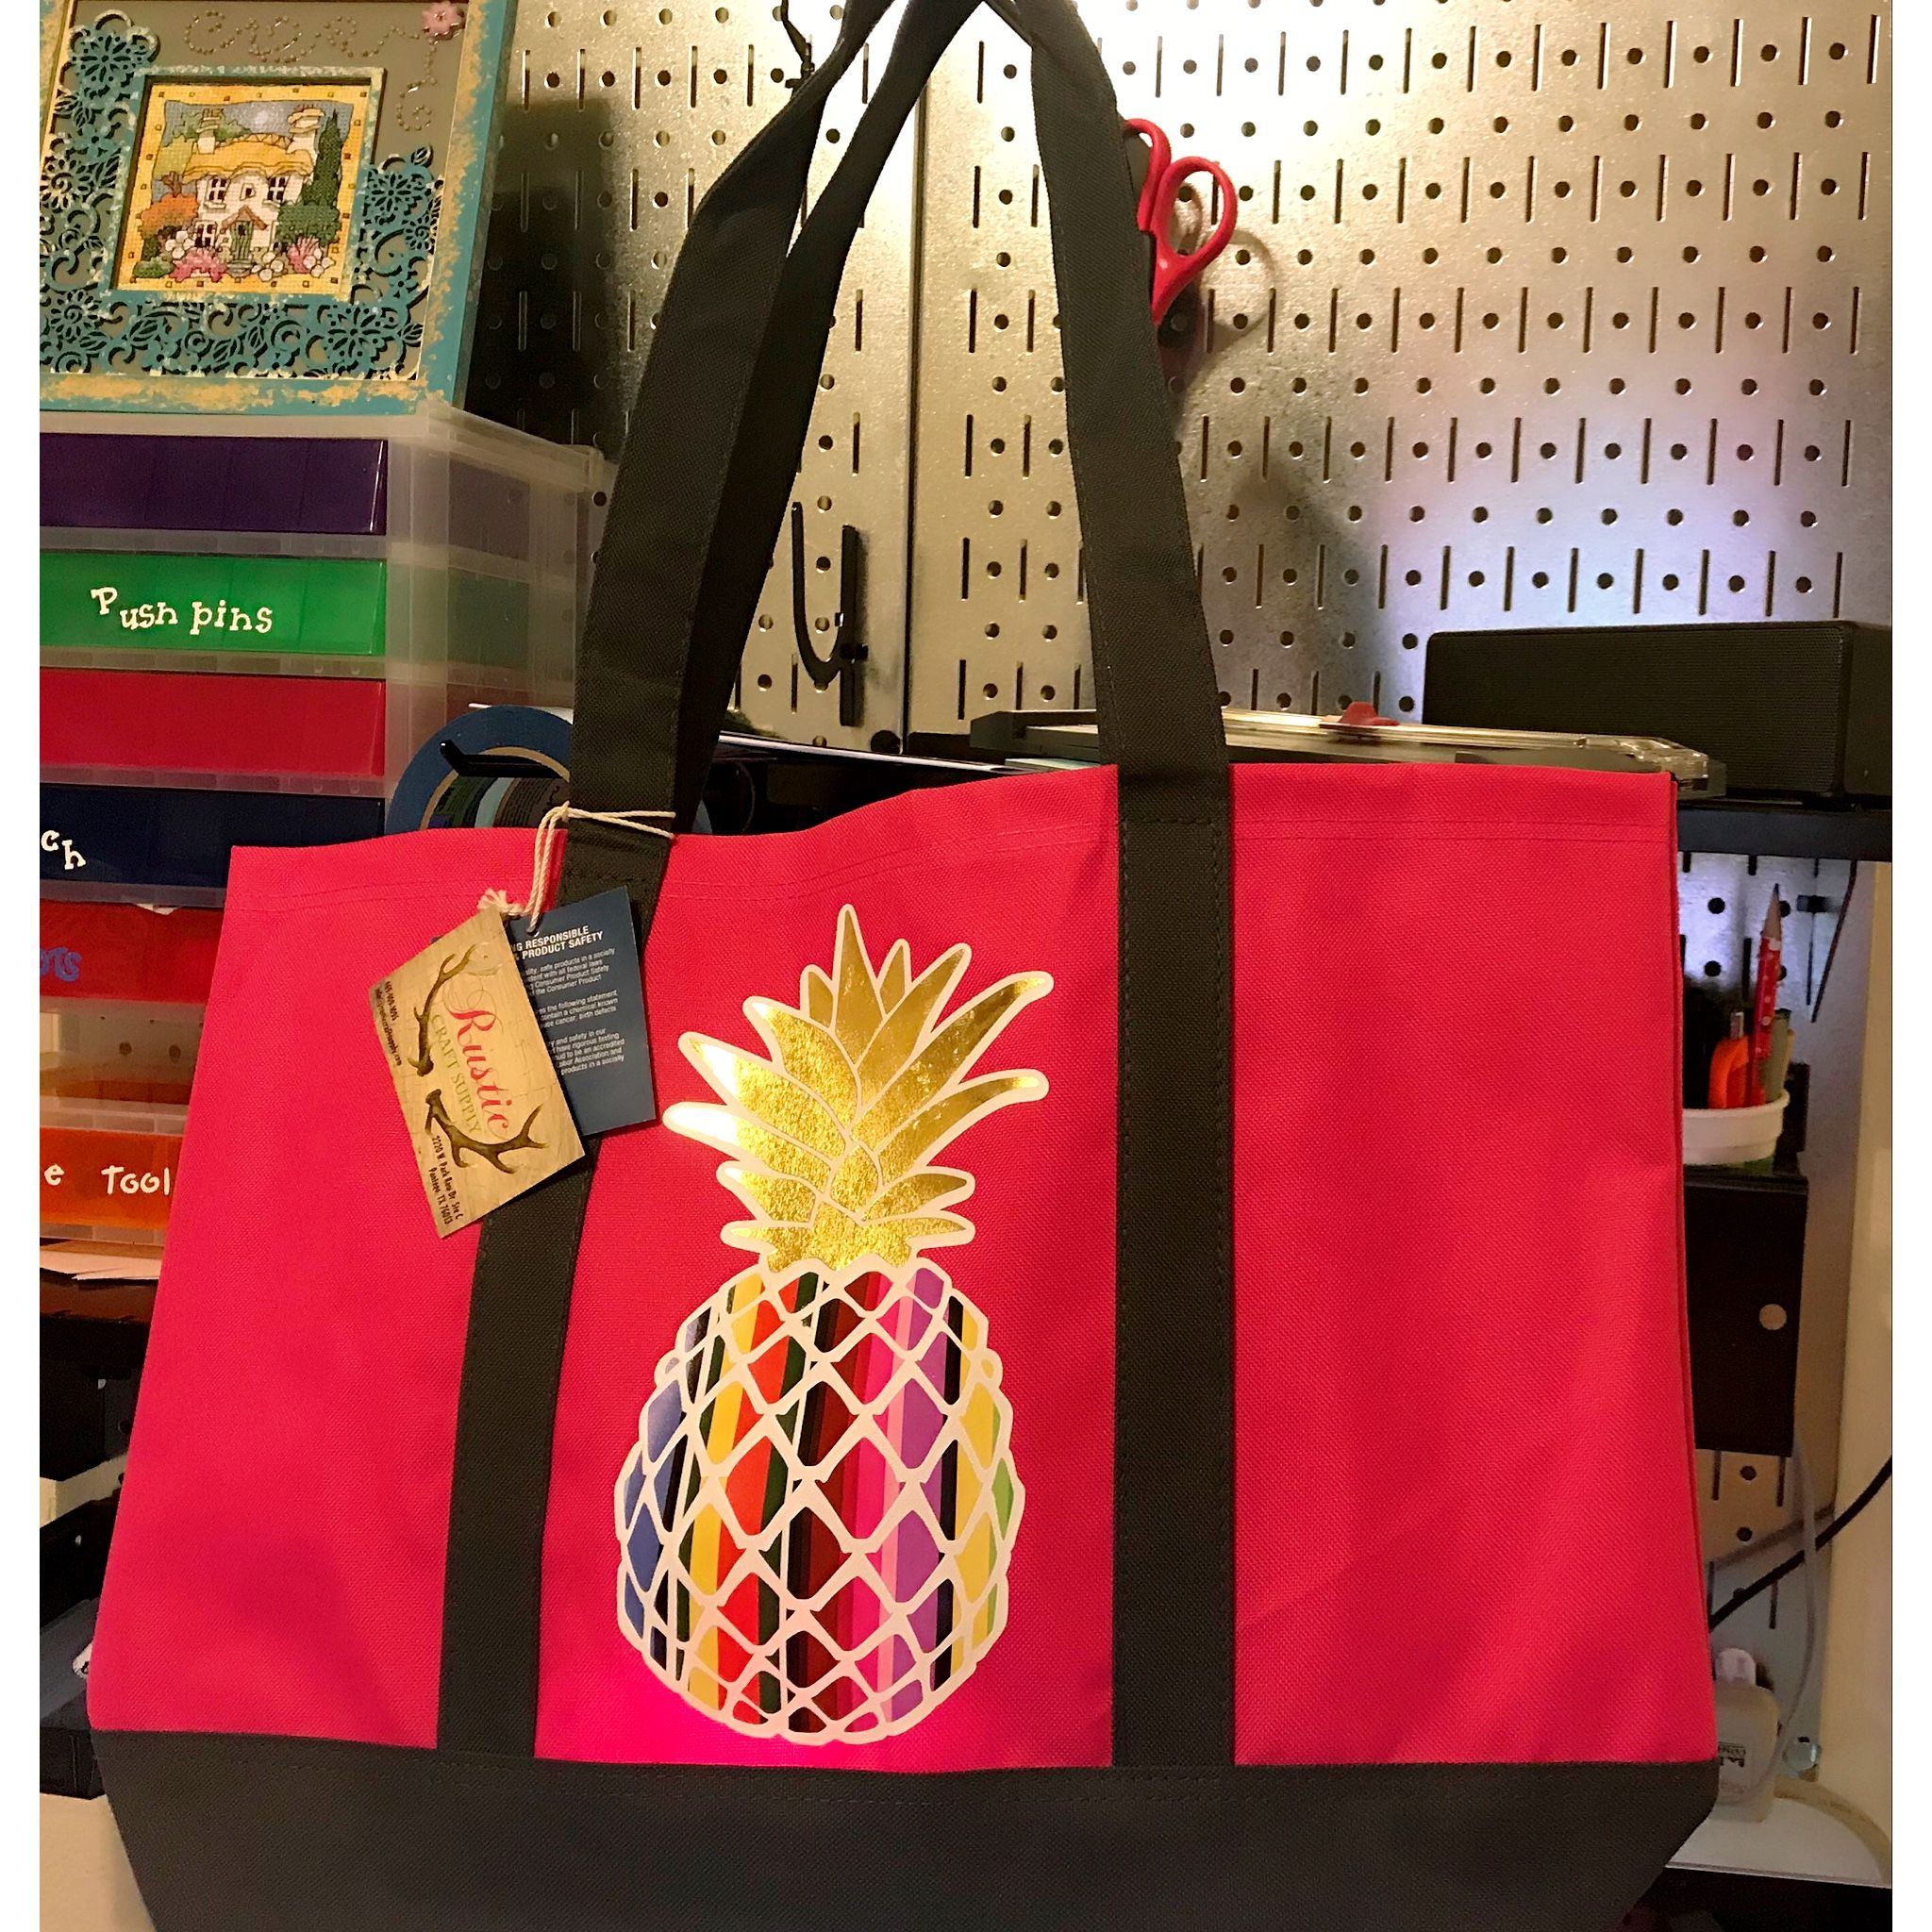 664fcf221e Made a Printed Heat transfer Vinyl Tote bag on my Silhouette Cameo.   pineapple  htv  tote bag  silhouette